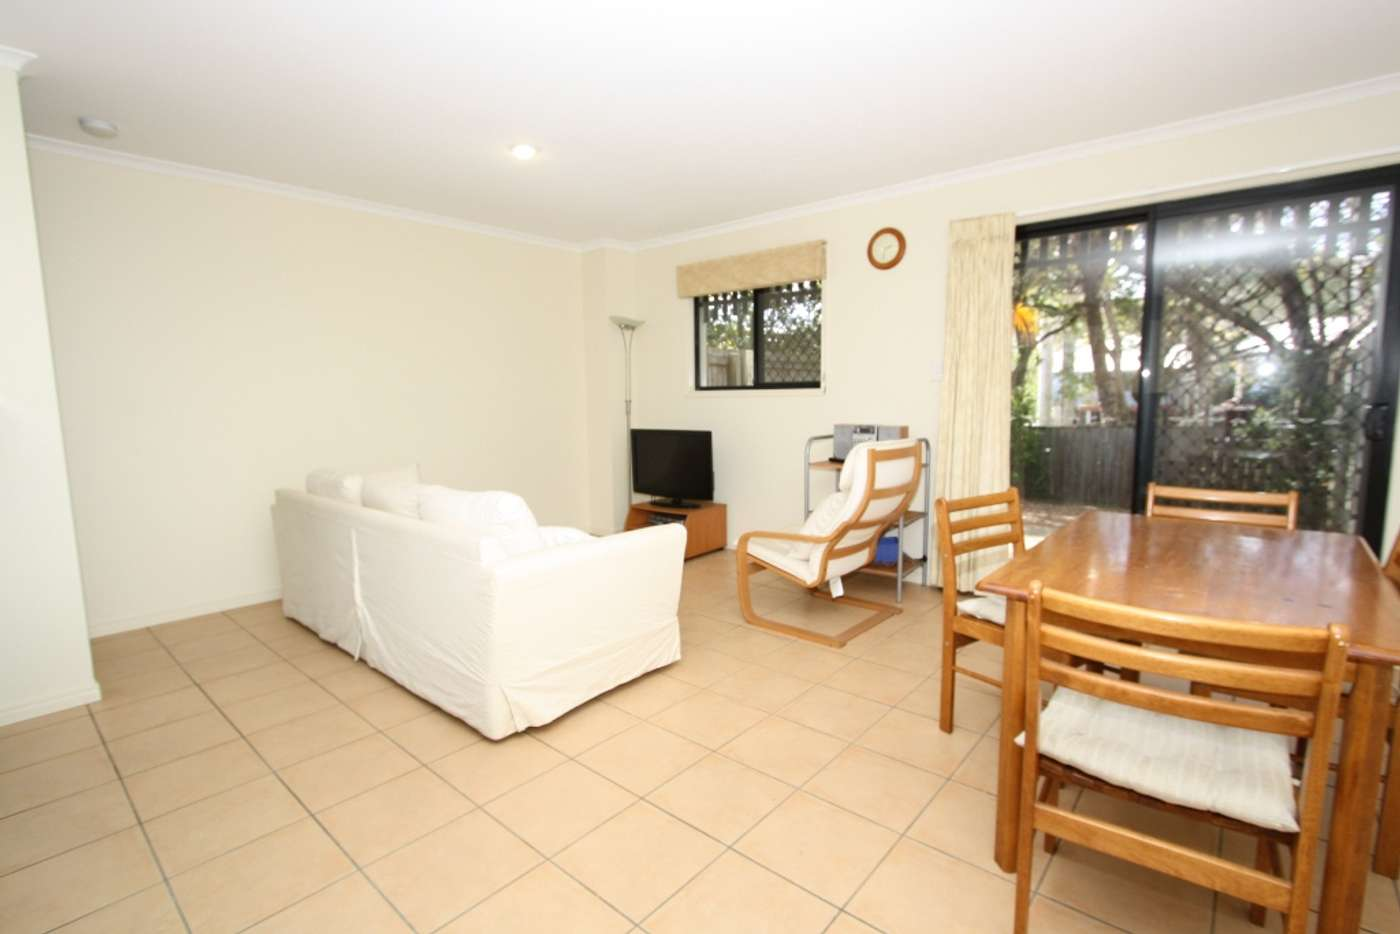 Sixth view of Homely townhouse listing, 27 Aberleigh Road, Herston QLD 4006